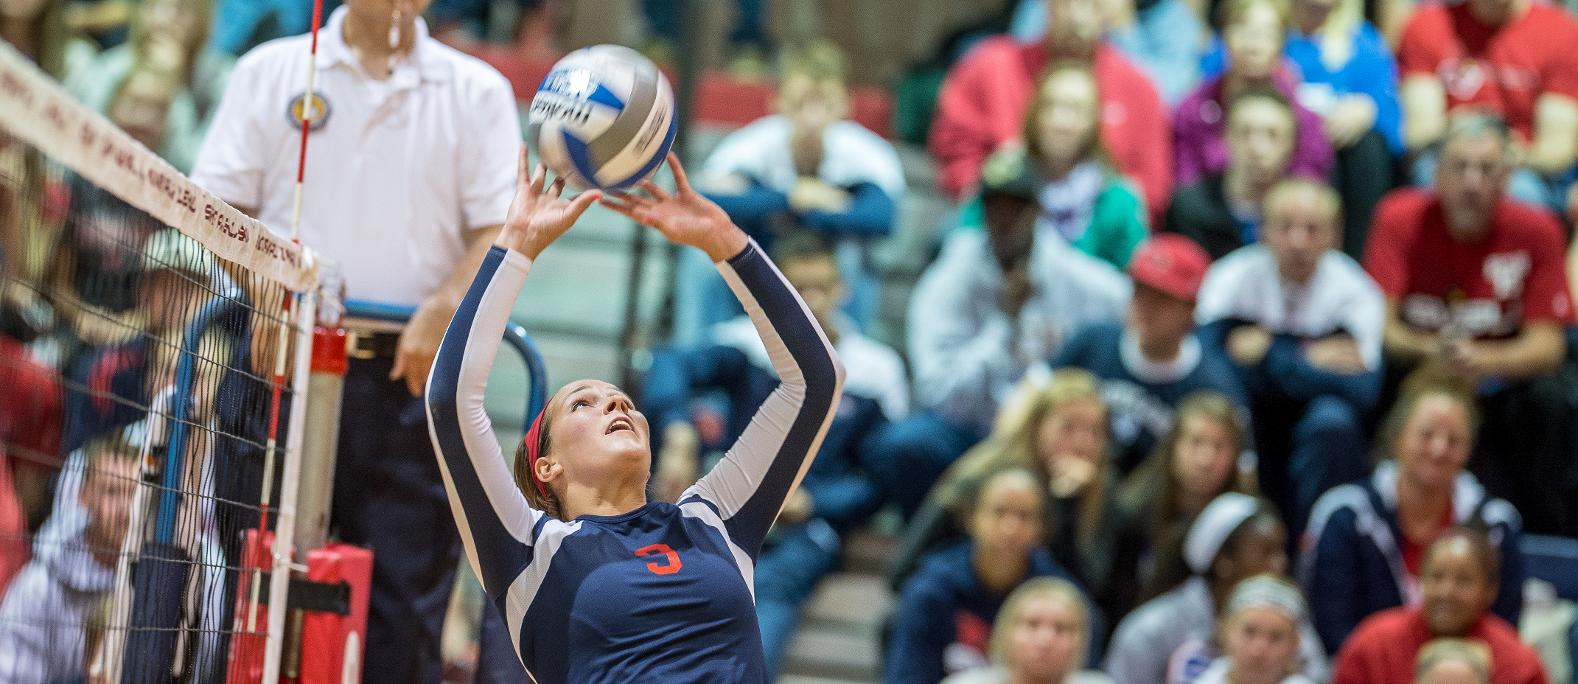 Cardinals Make it Six Straight After Five Set Win at Northern Michigan